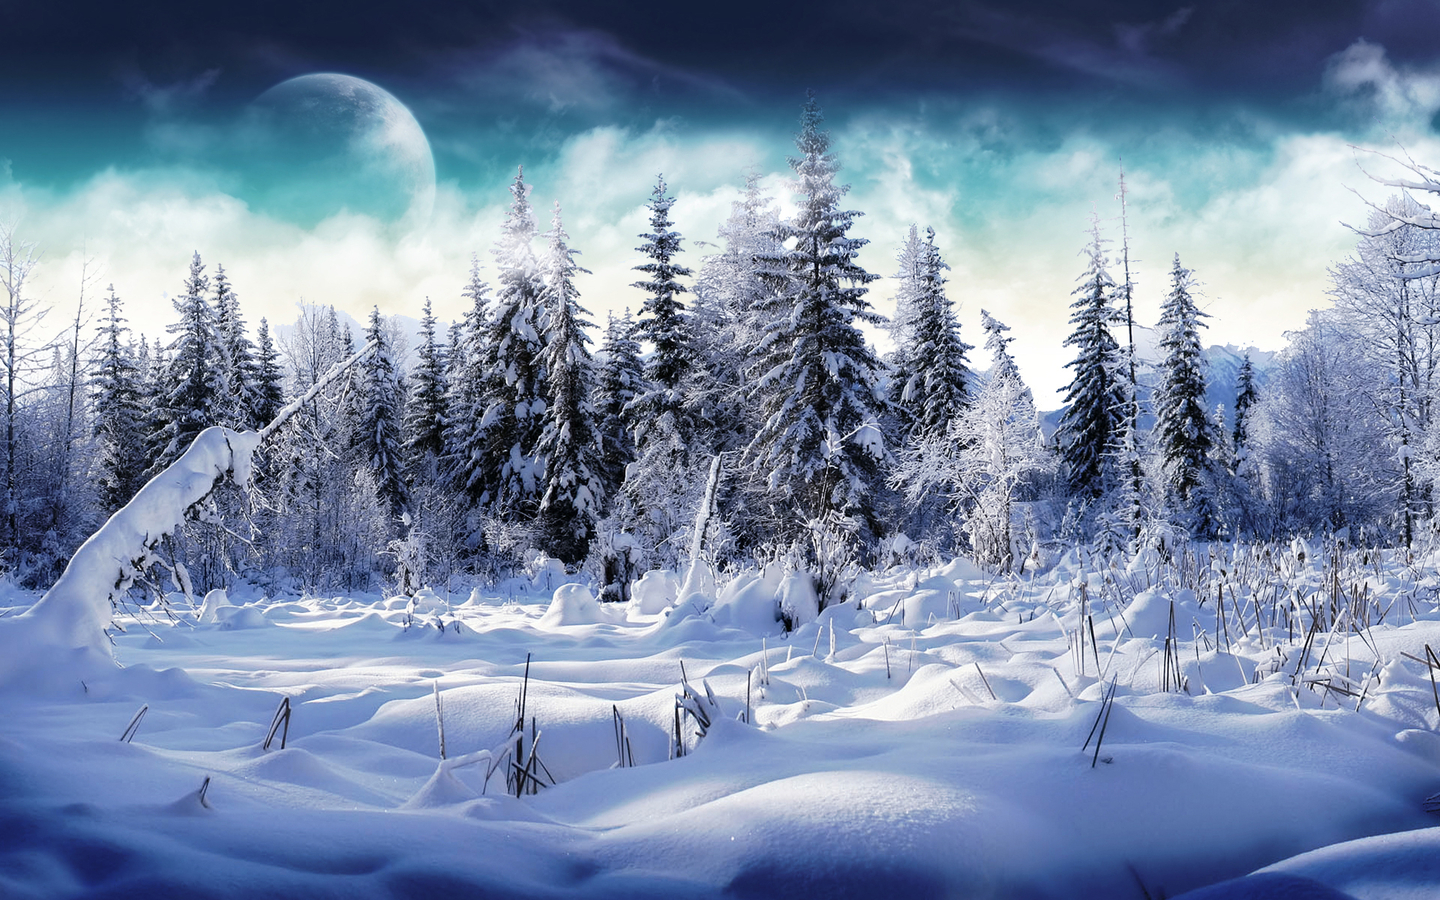 Winter Scenery PowerPoint Background  6 1440x900